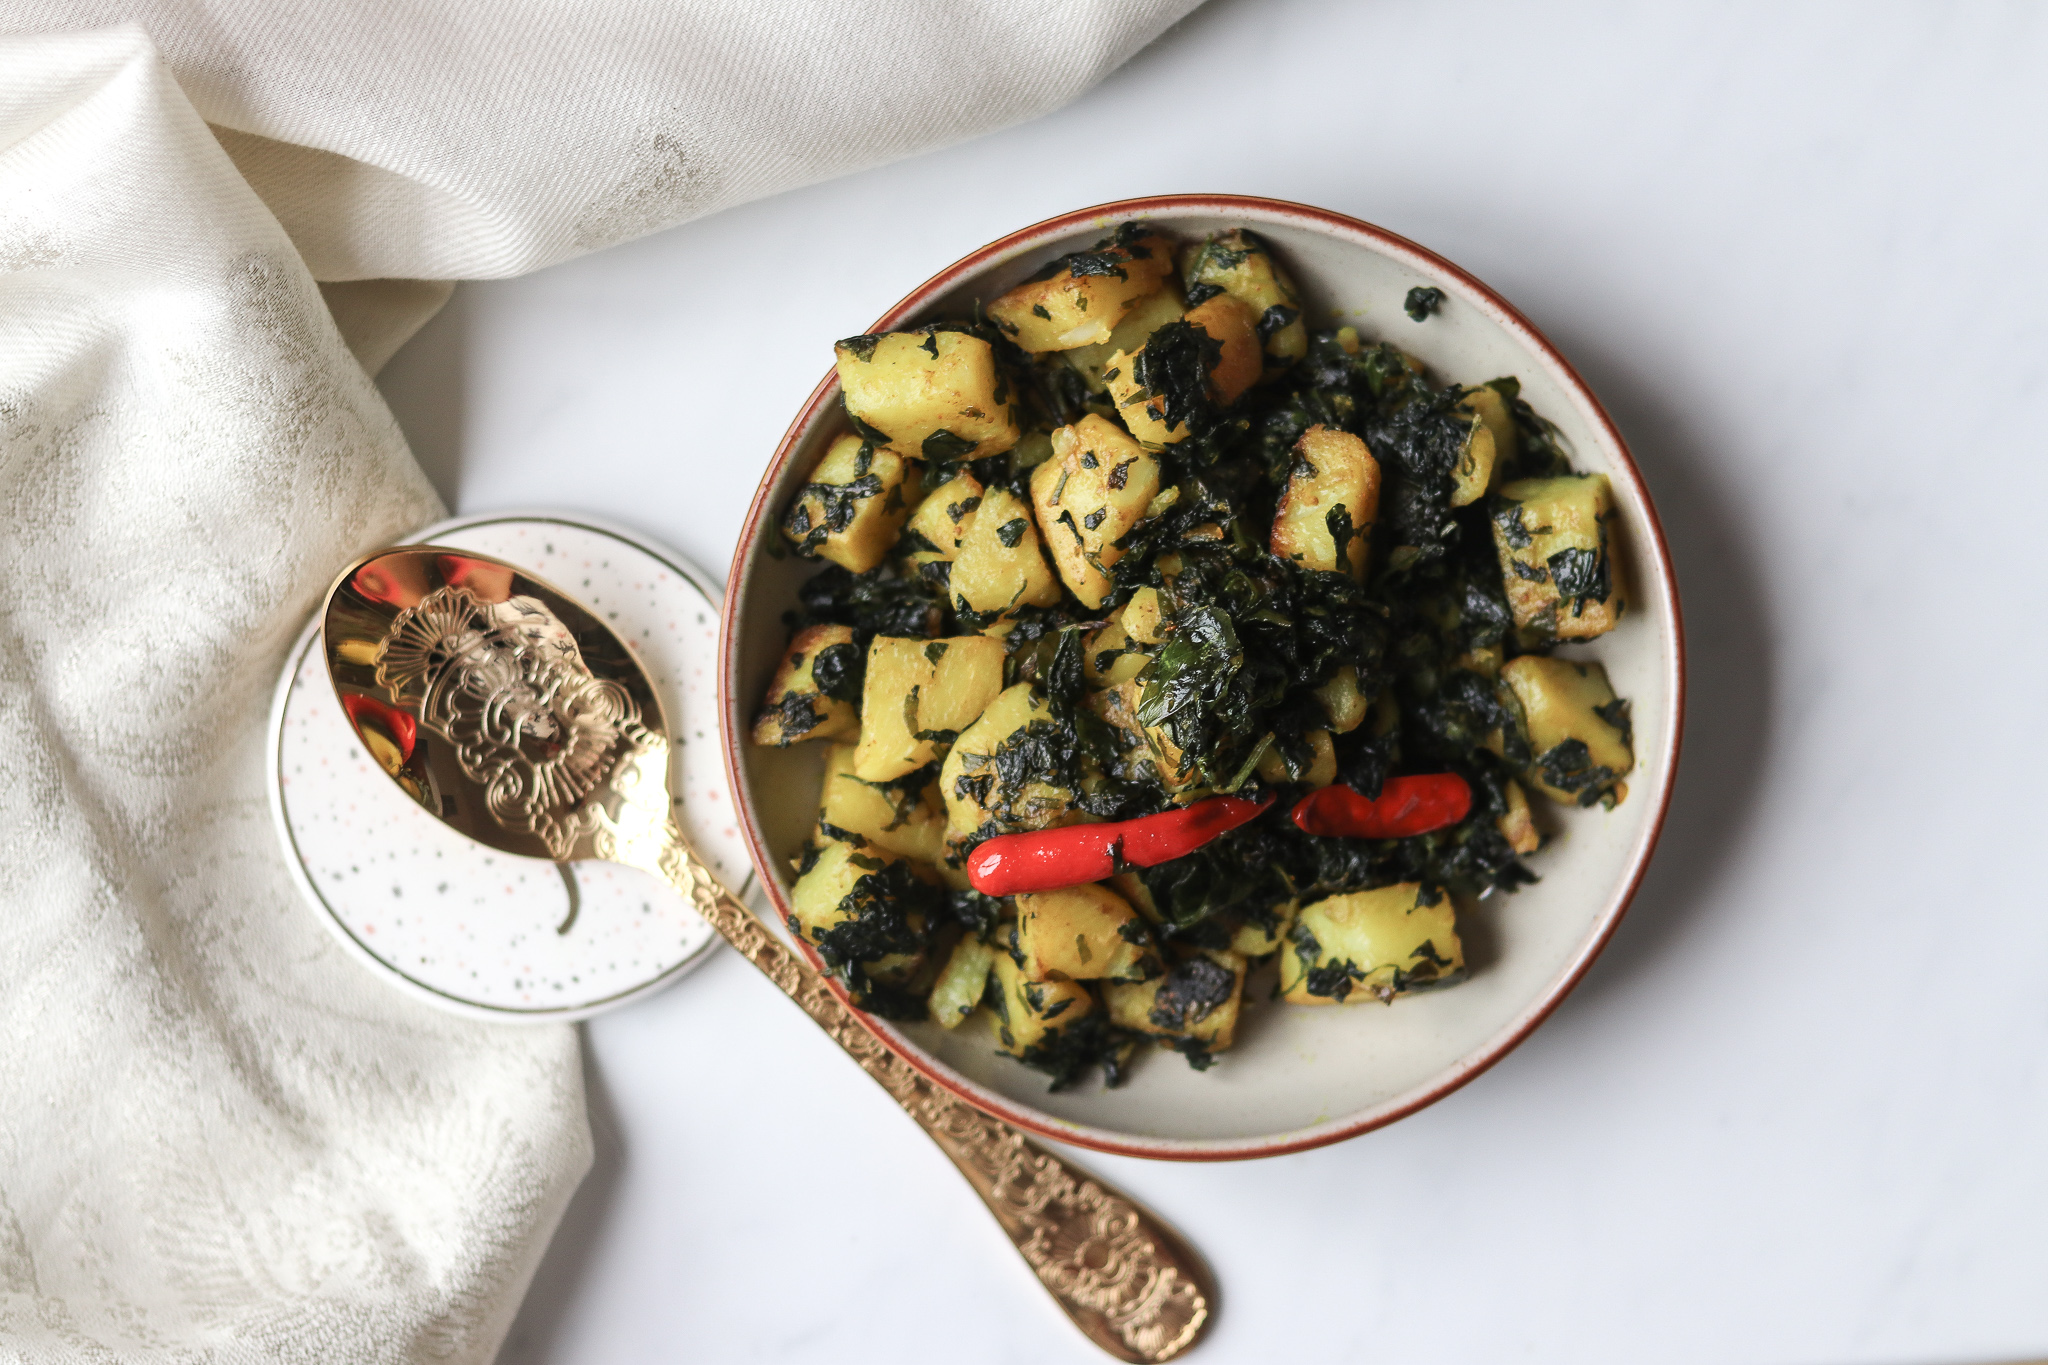 Aloo Methi / Stir fried Potato and fenugreek leaves